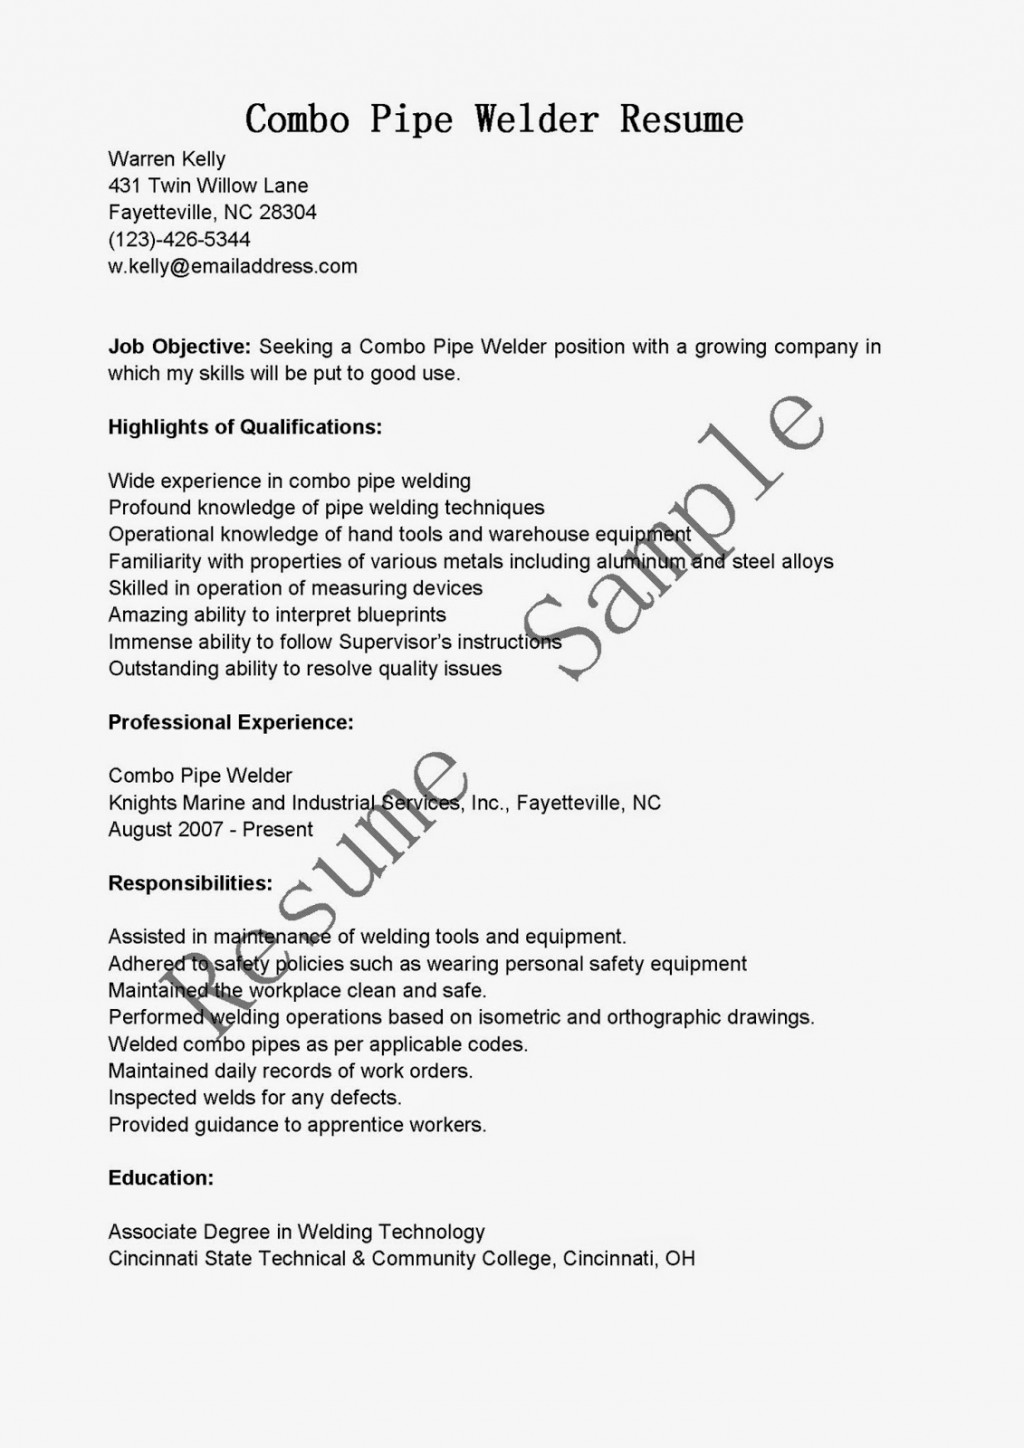 022 Book Review Essay Example Awesome Collection Of Thesis Statement Examples Resume Spectacular